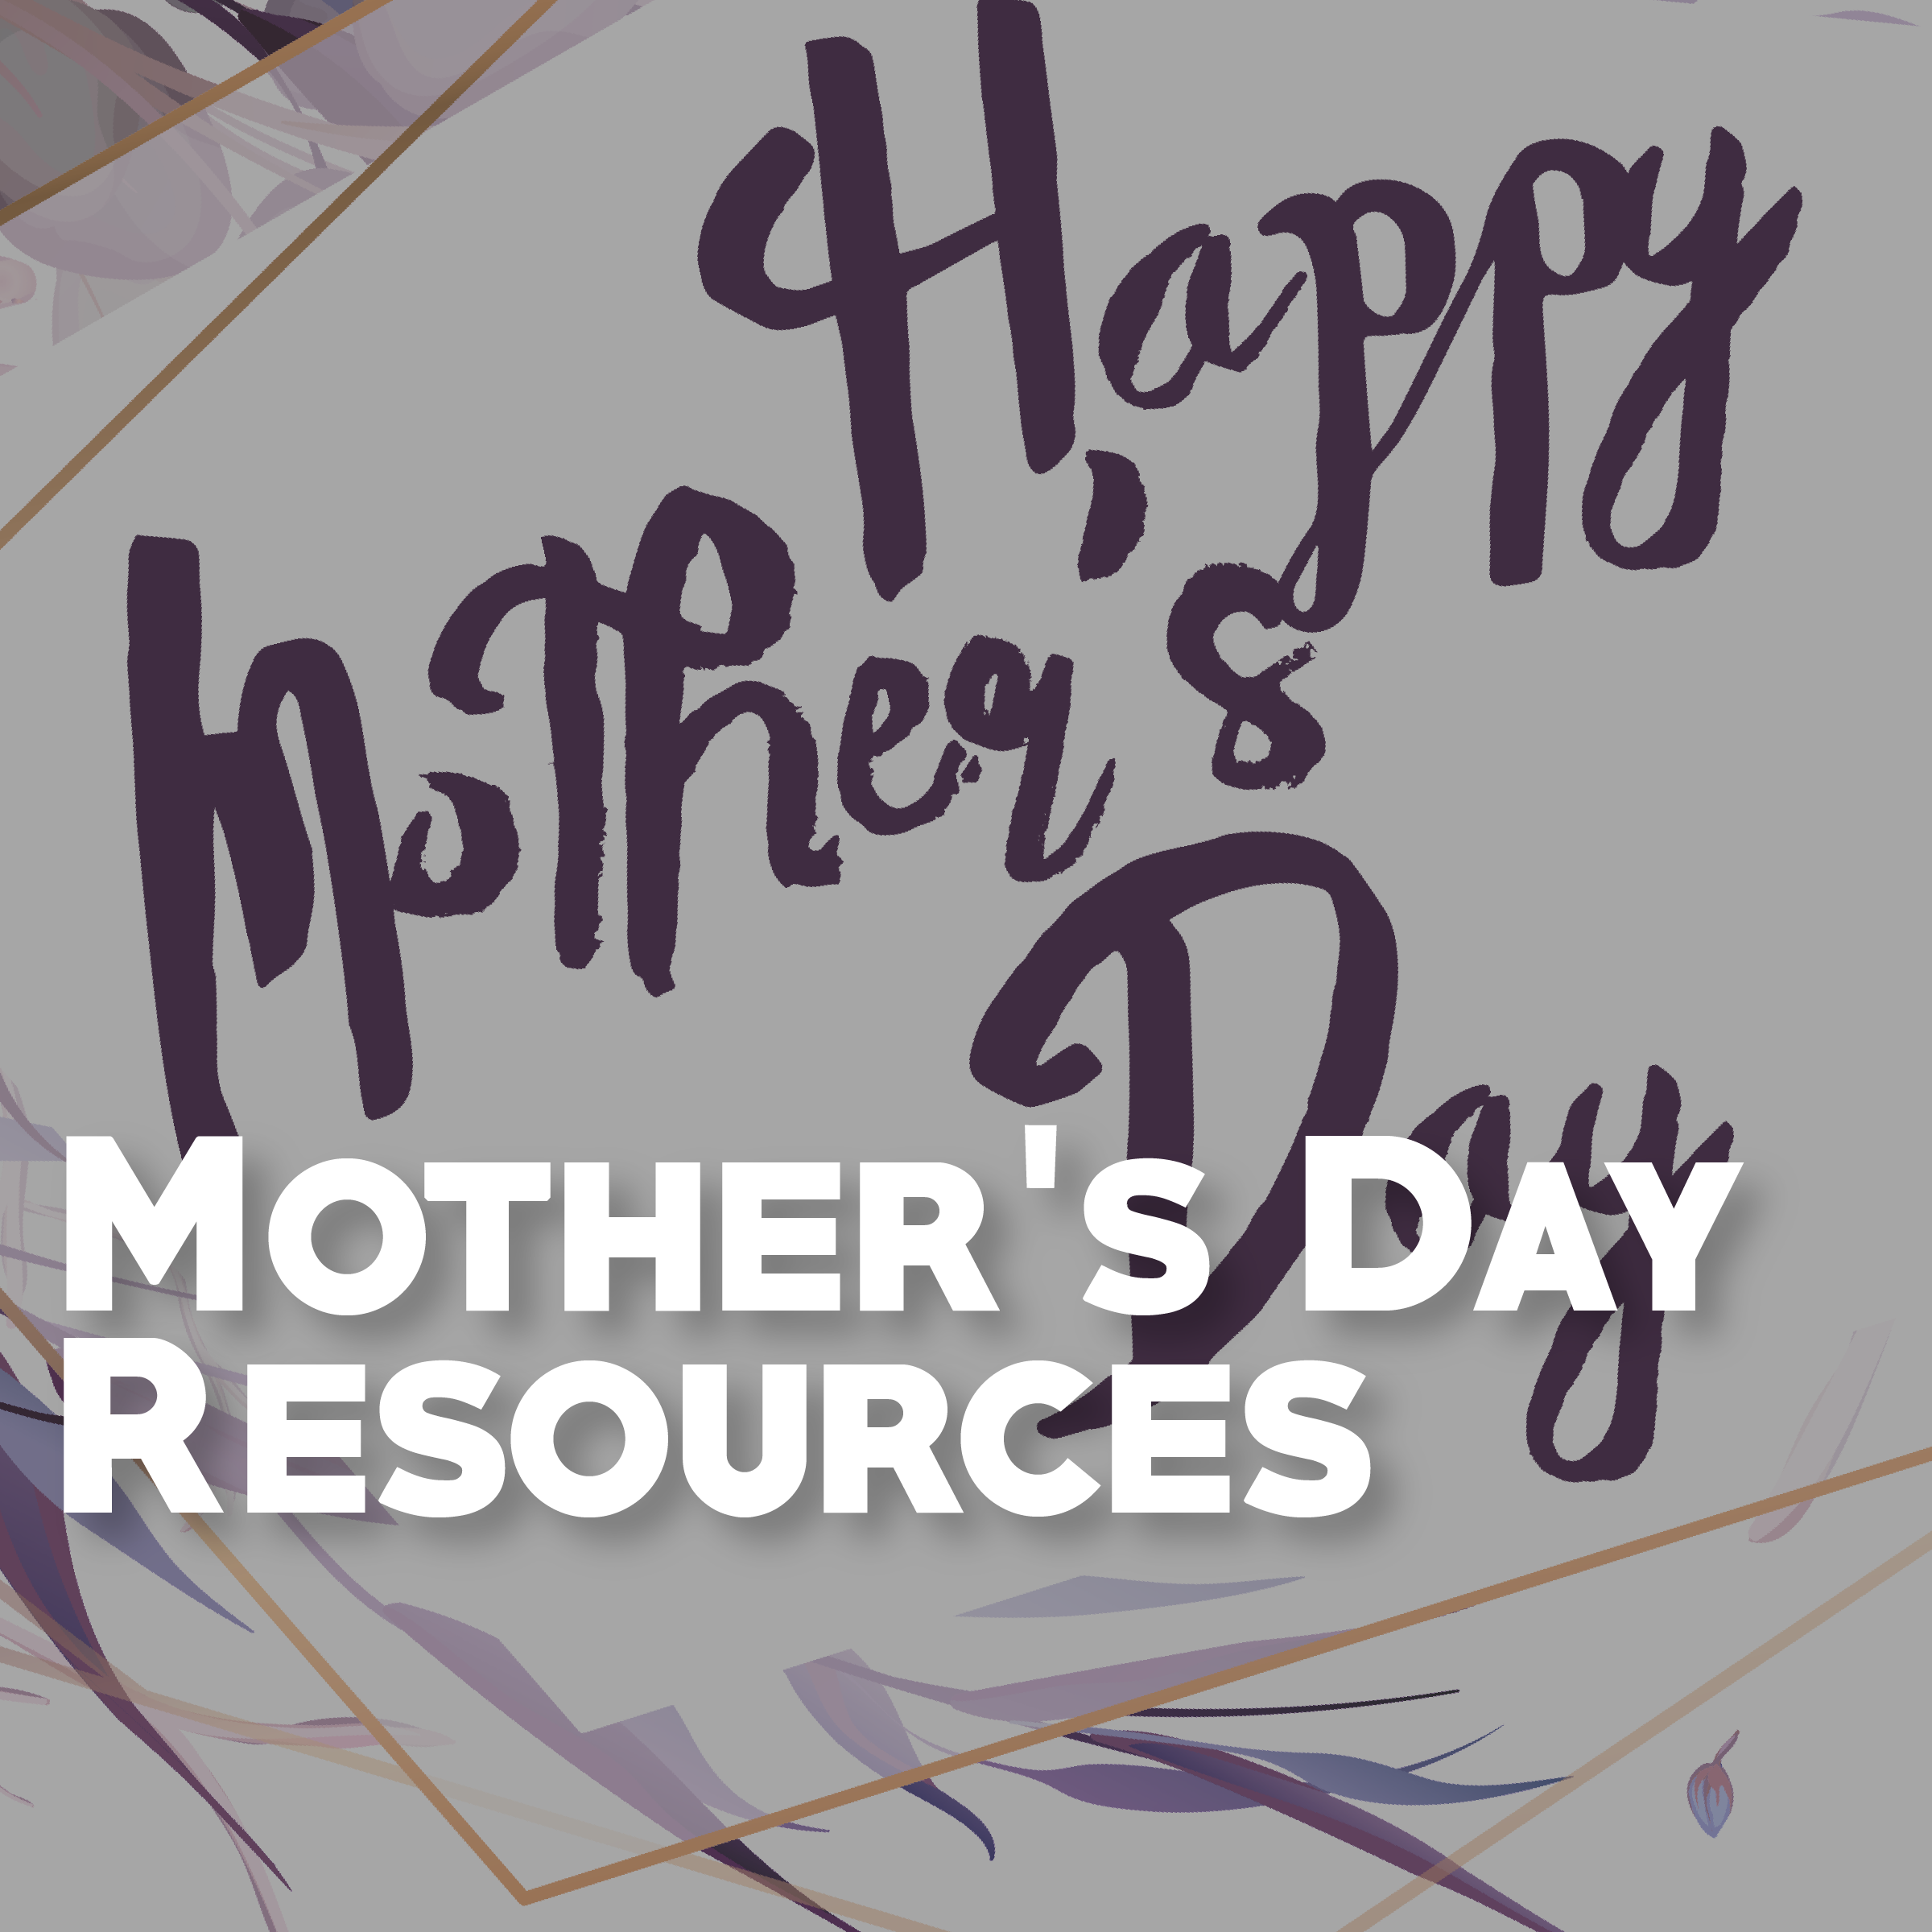 Mother's Day Resources Graphic.png